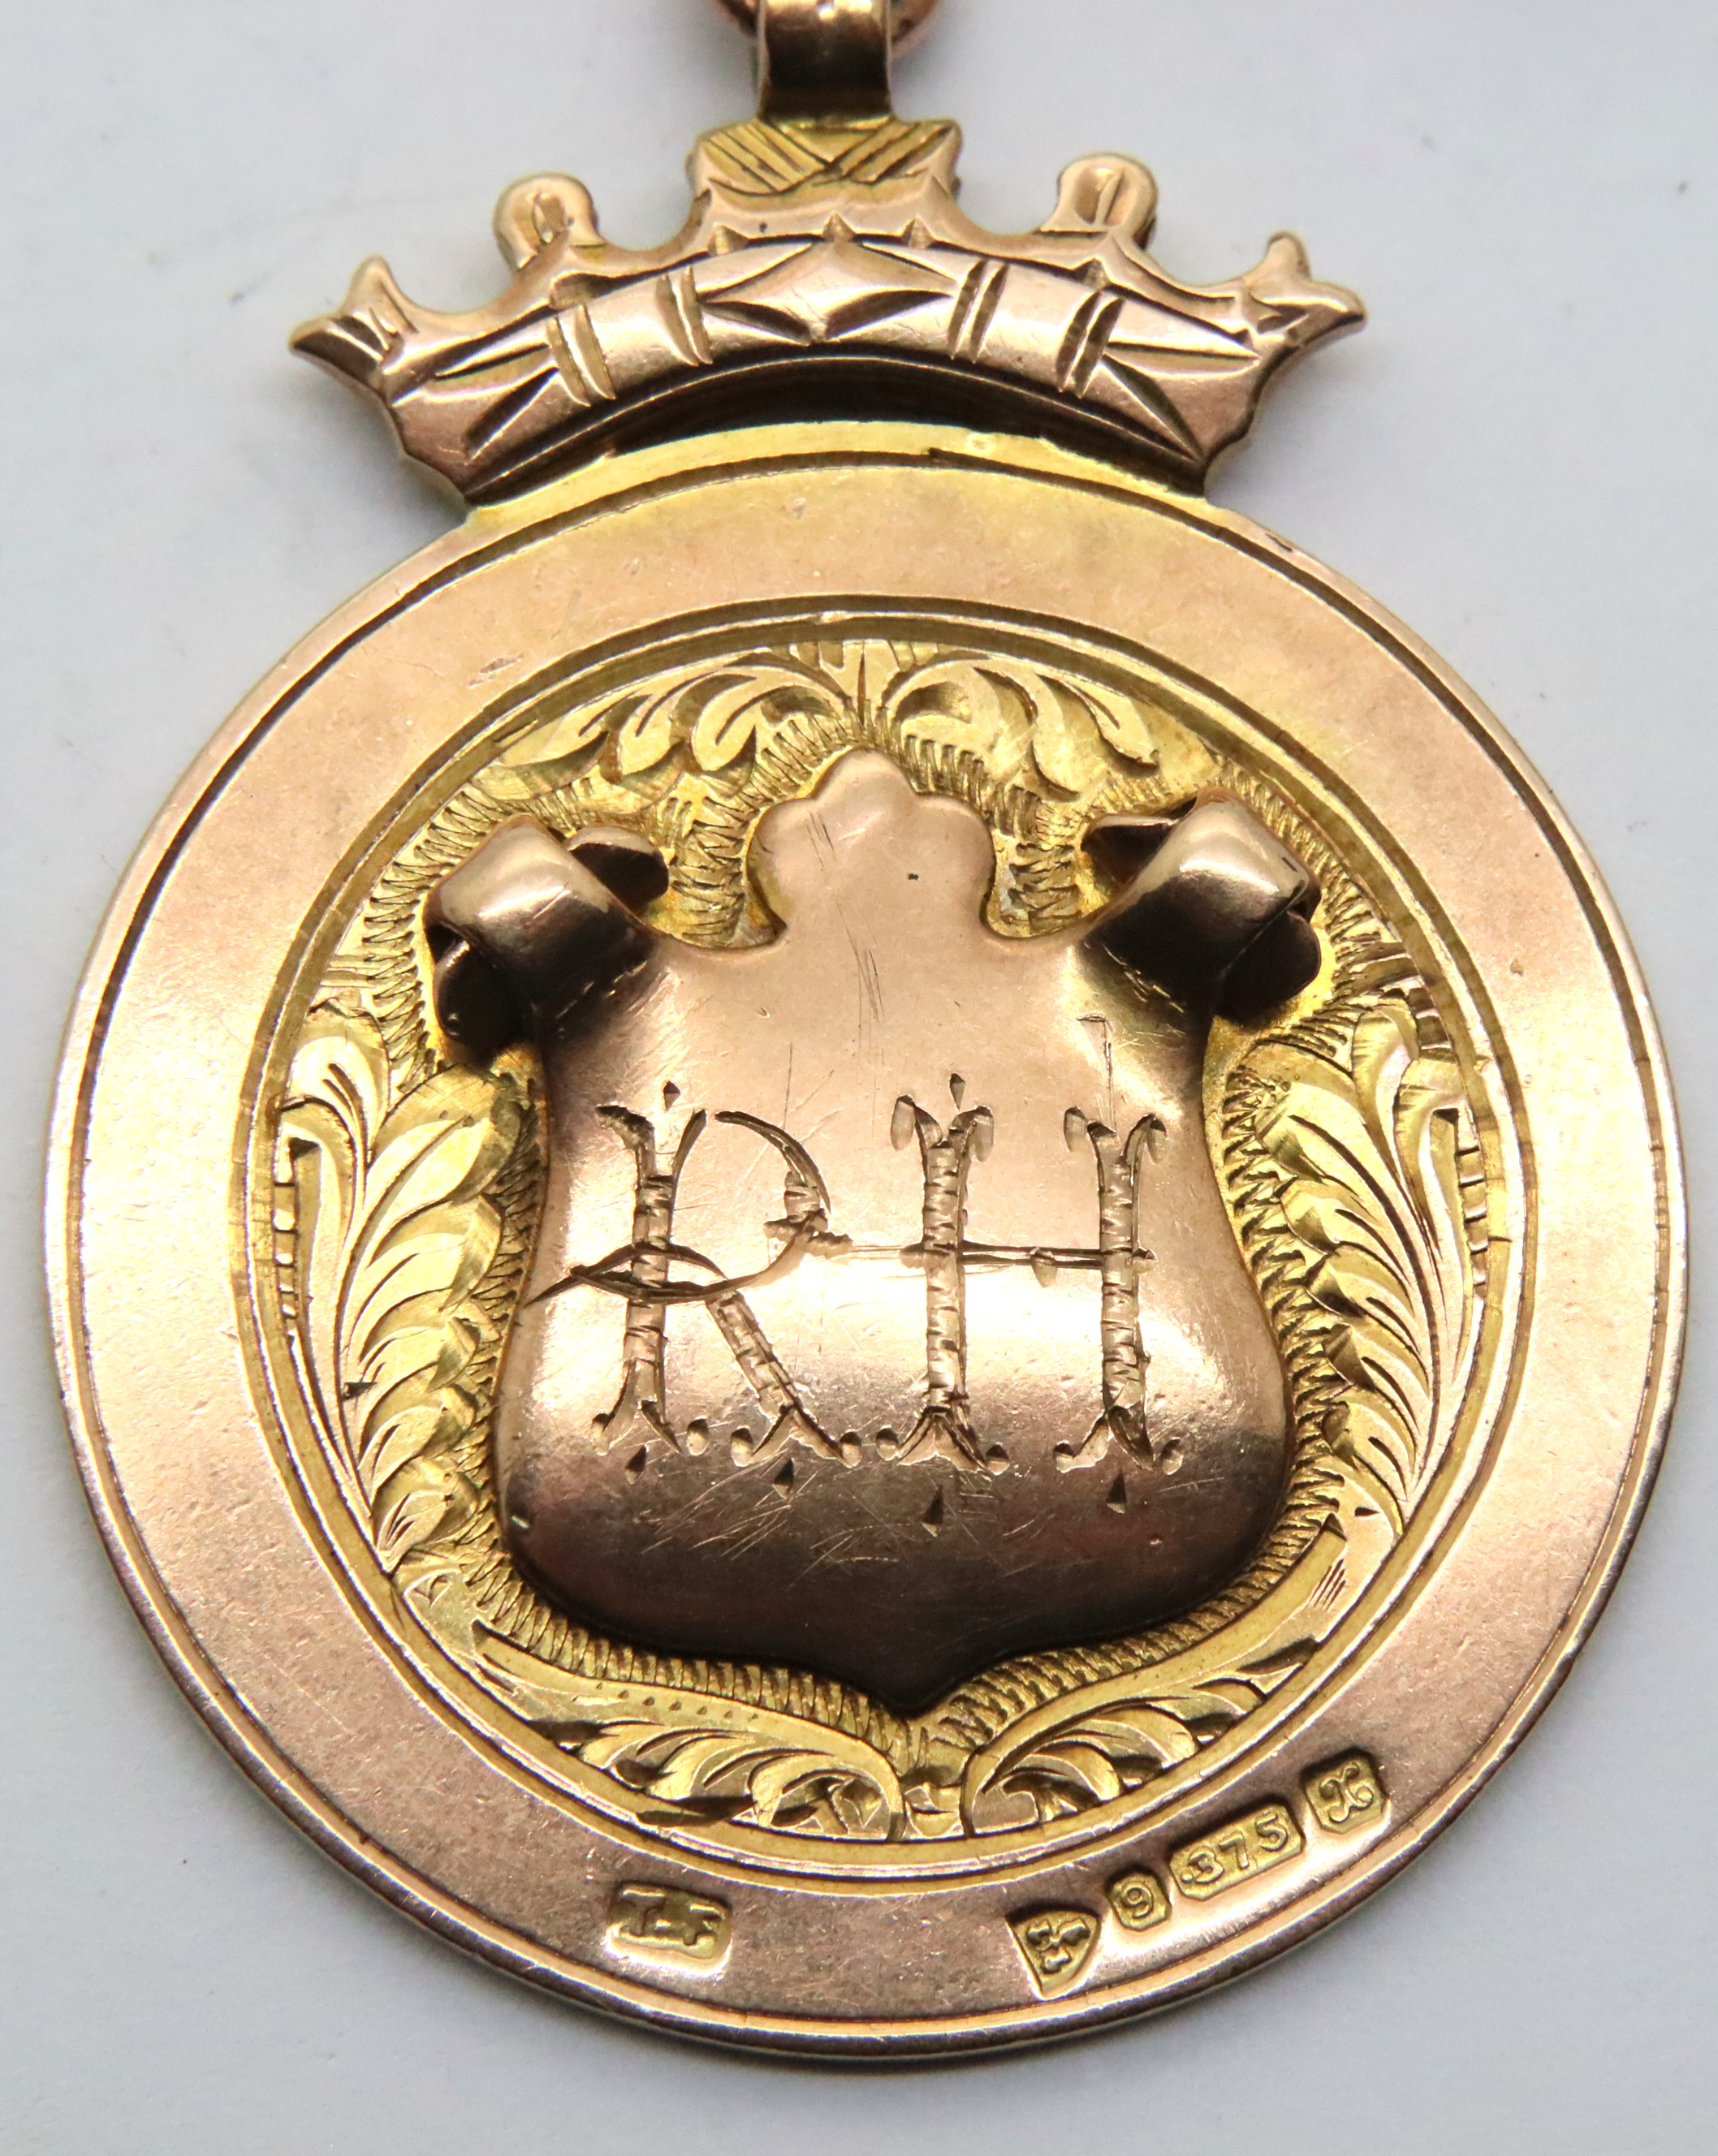 Antique 1923 Chester 9ct rose gold and enamel fishing medal/pocket watch fob by Thomas Fattorini, - Image 2 of 3